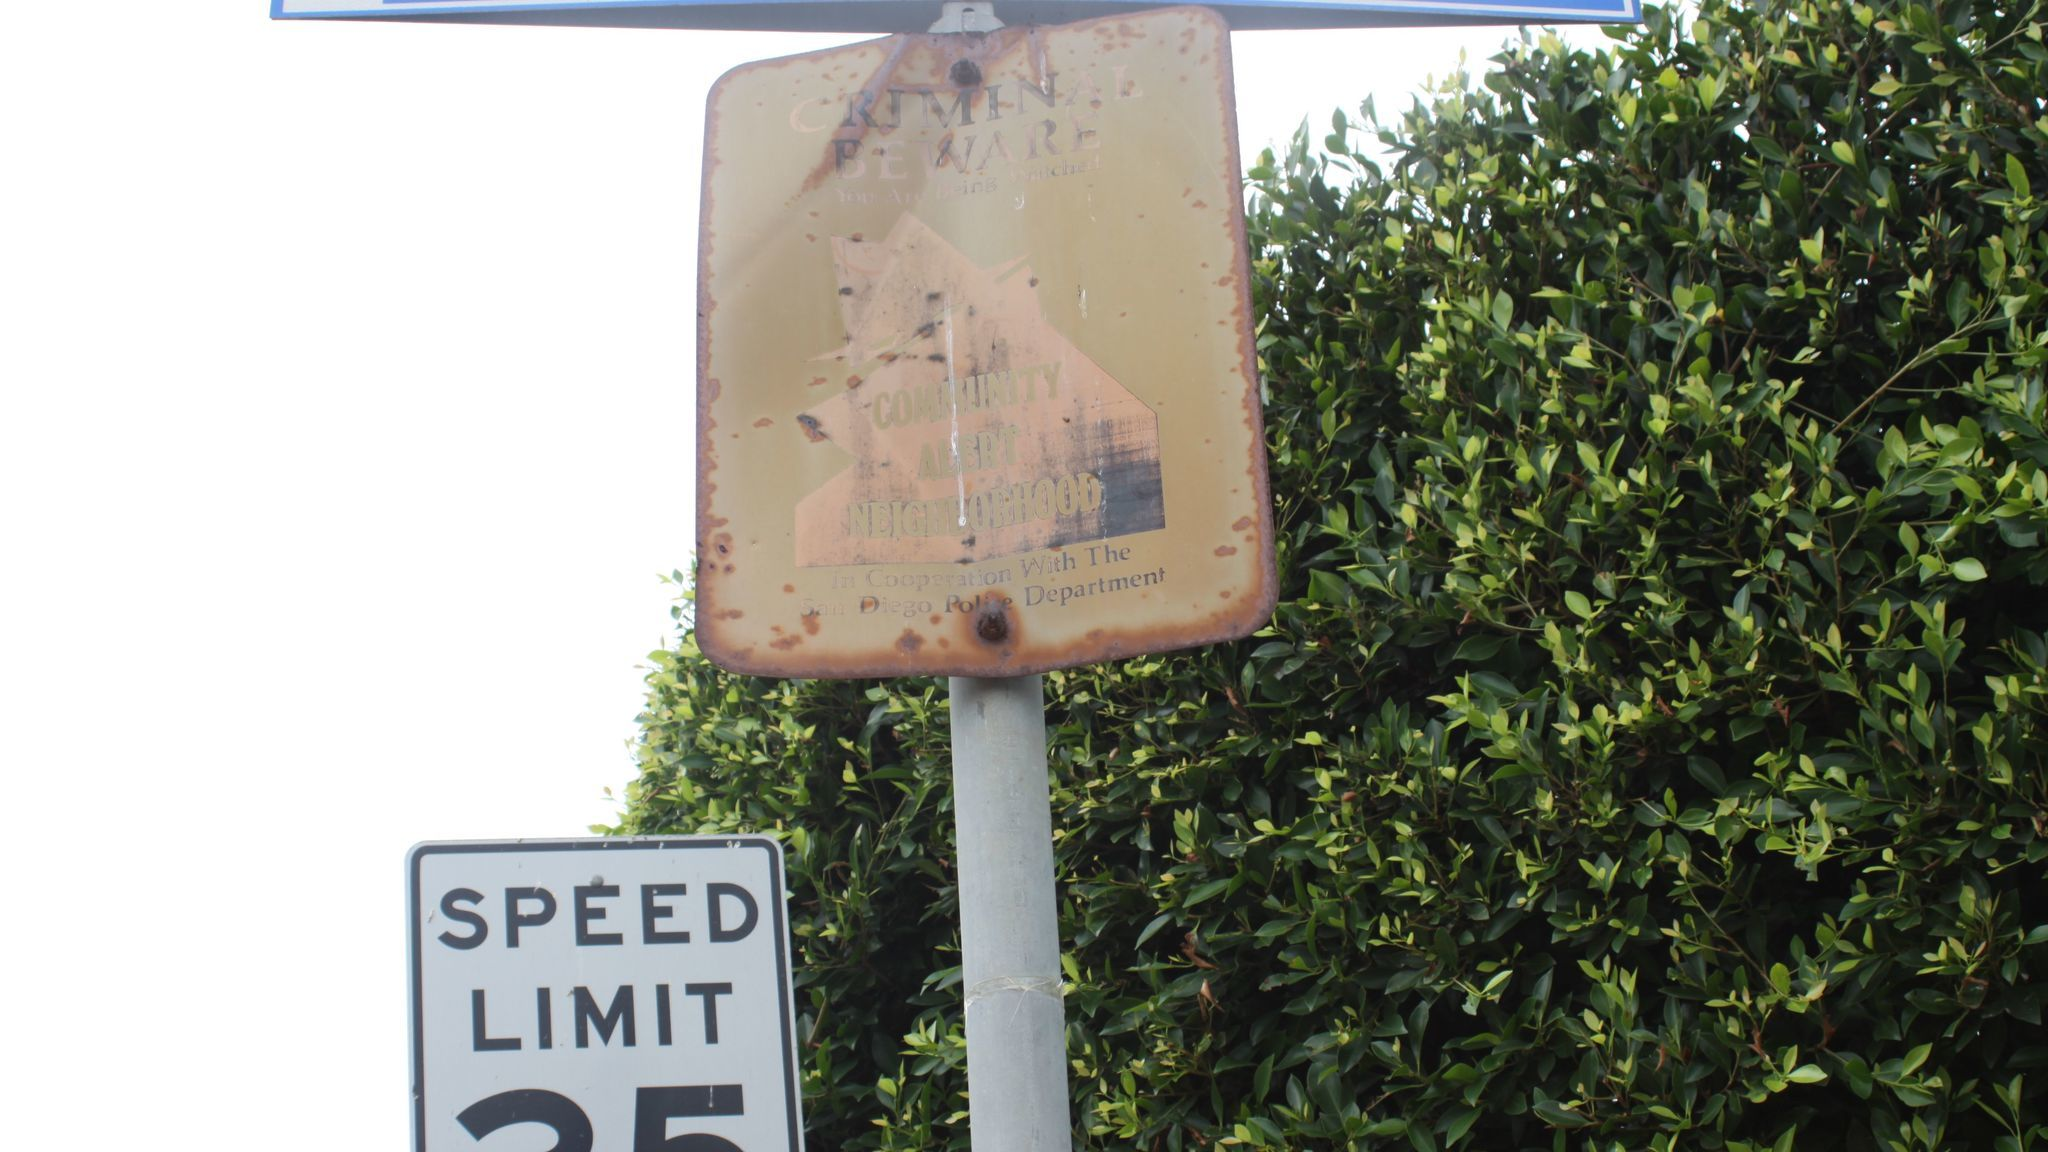 Old Neighborhood Watch signs suggest the area is not being monitored, and the La Jolla Community Crime Watch committee wants them replaced soon.